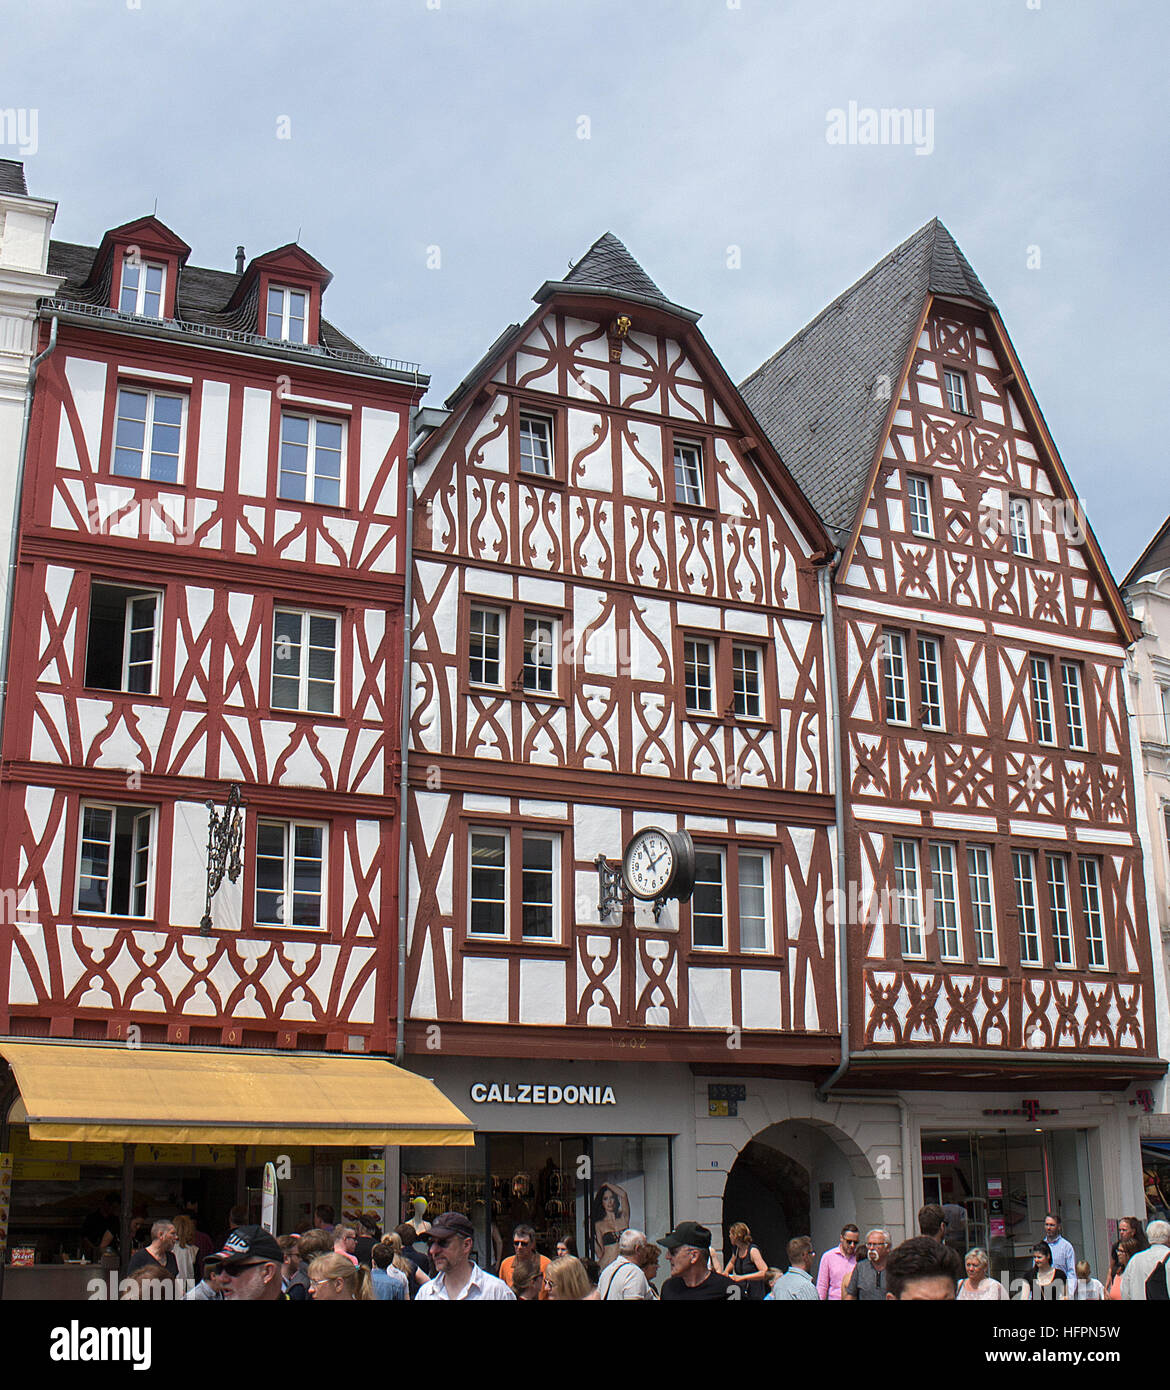 Half-timbered buildings in Trier, Germany - Stock Image